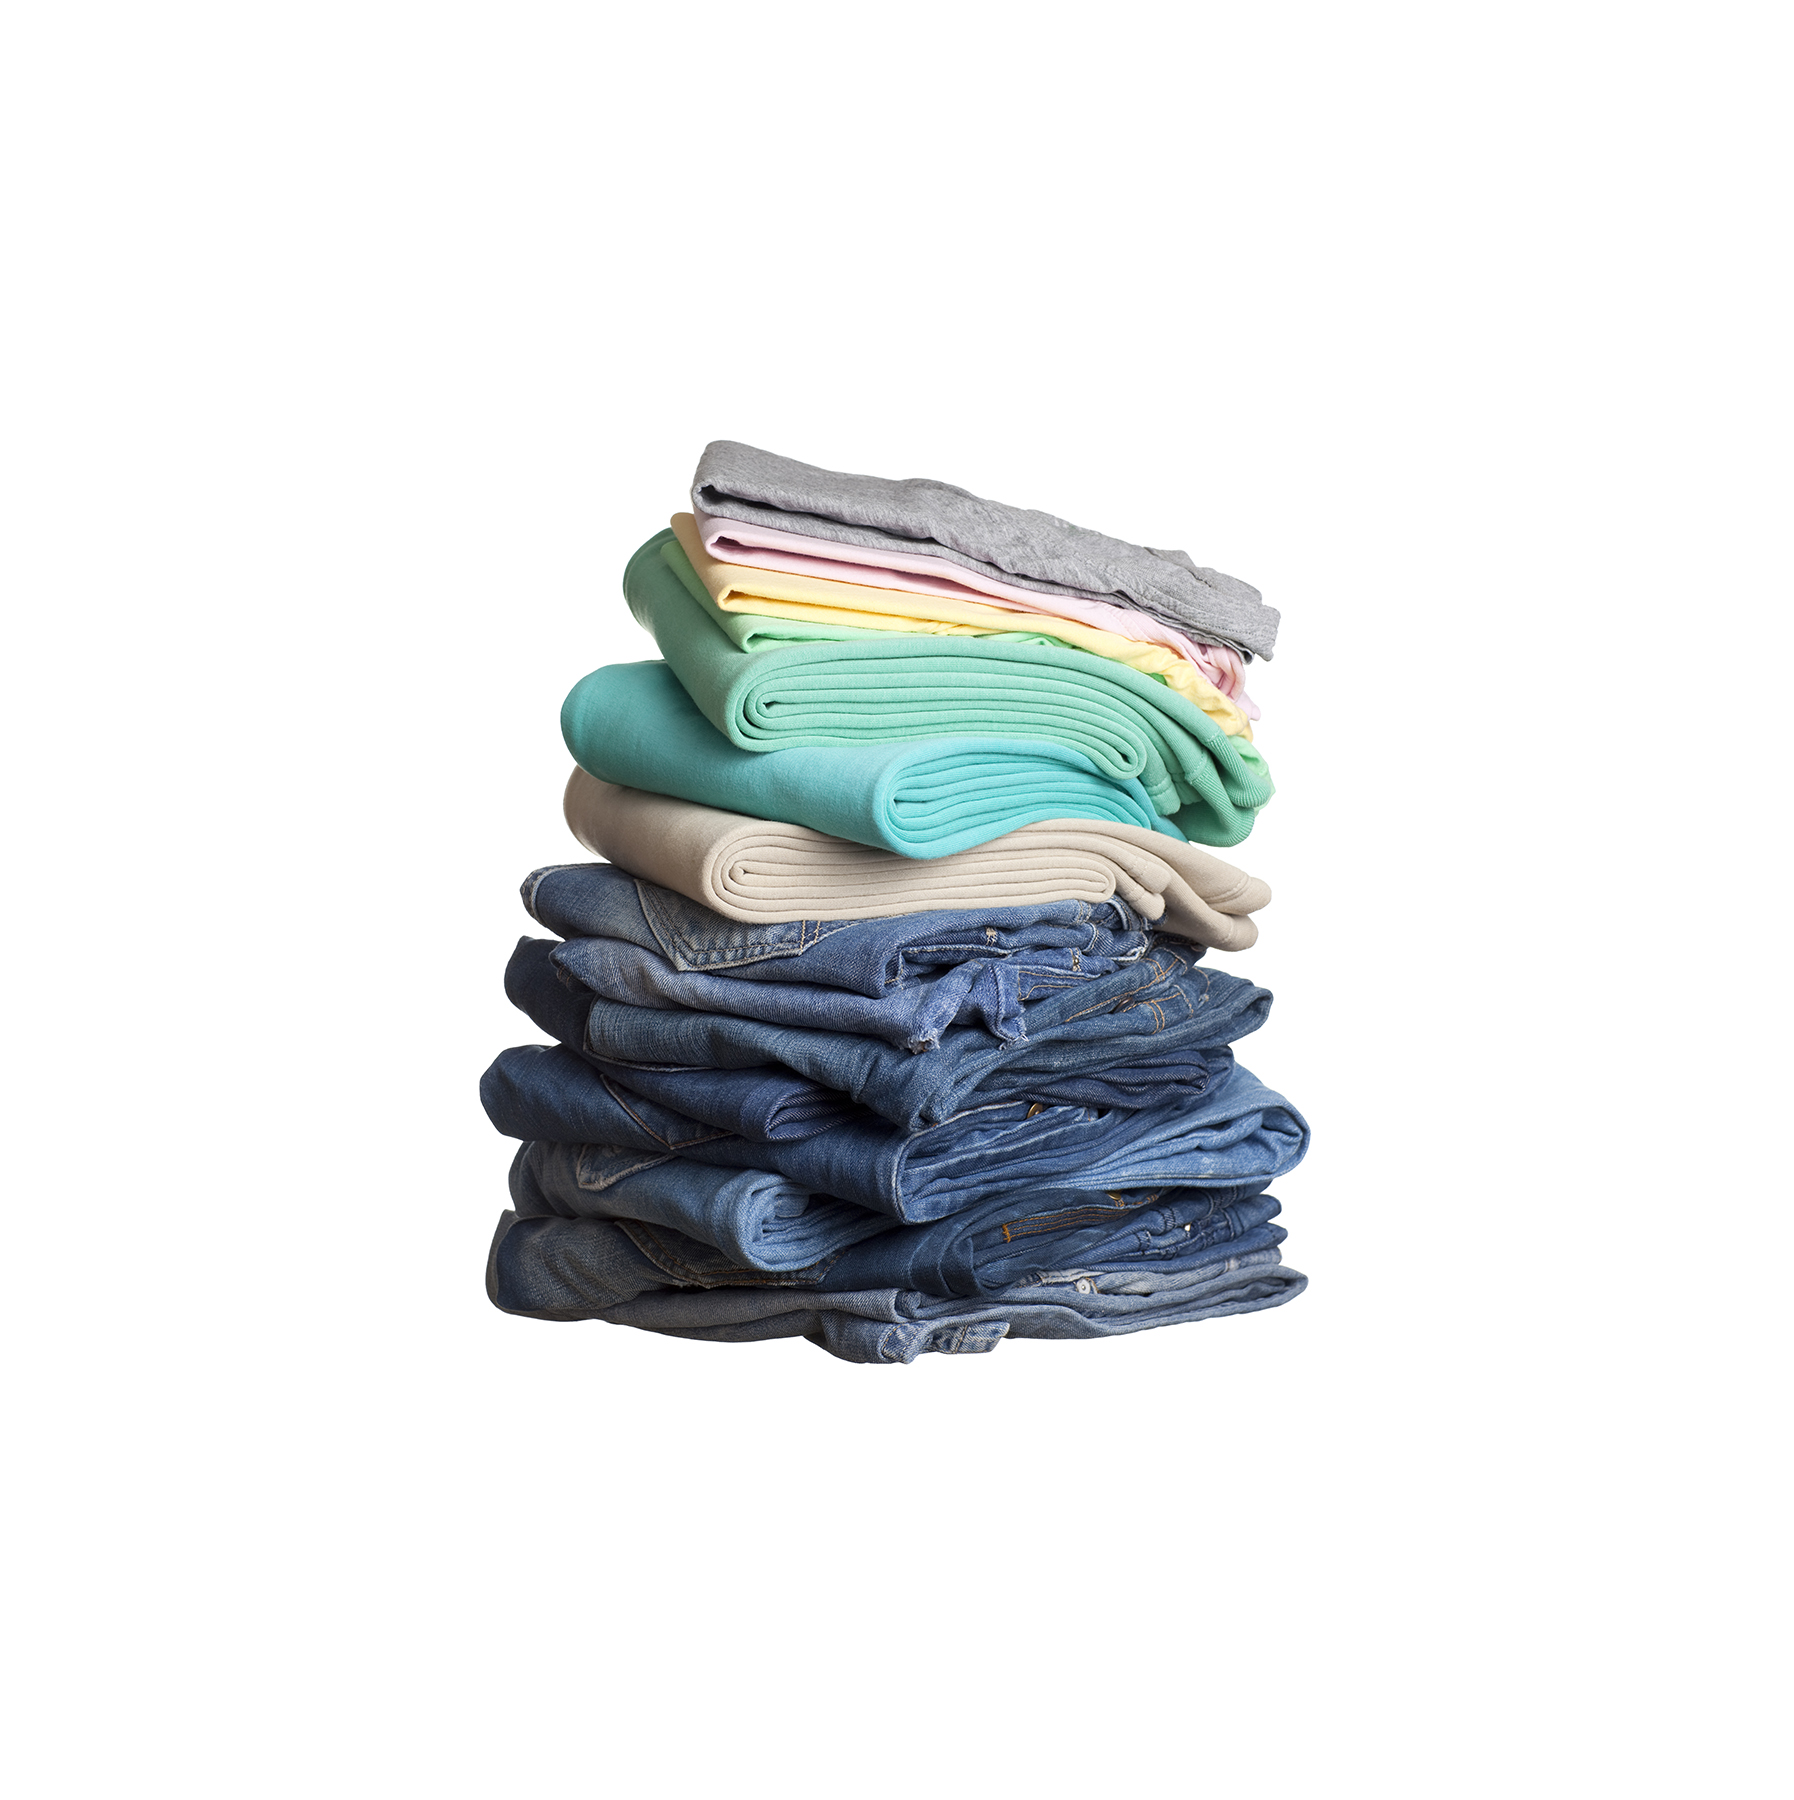 Heap of folded clothes